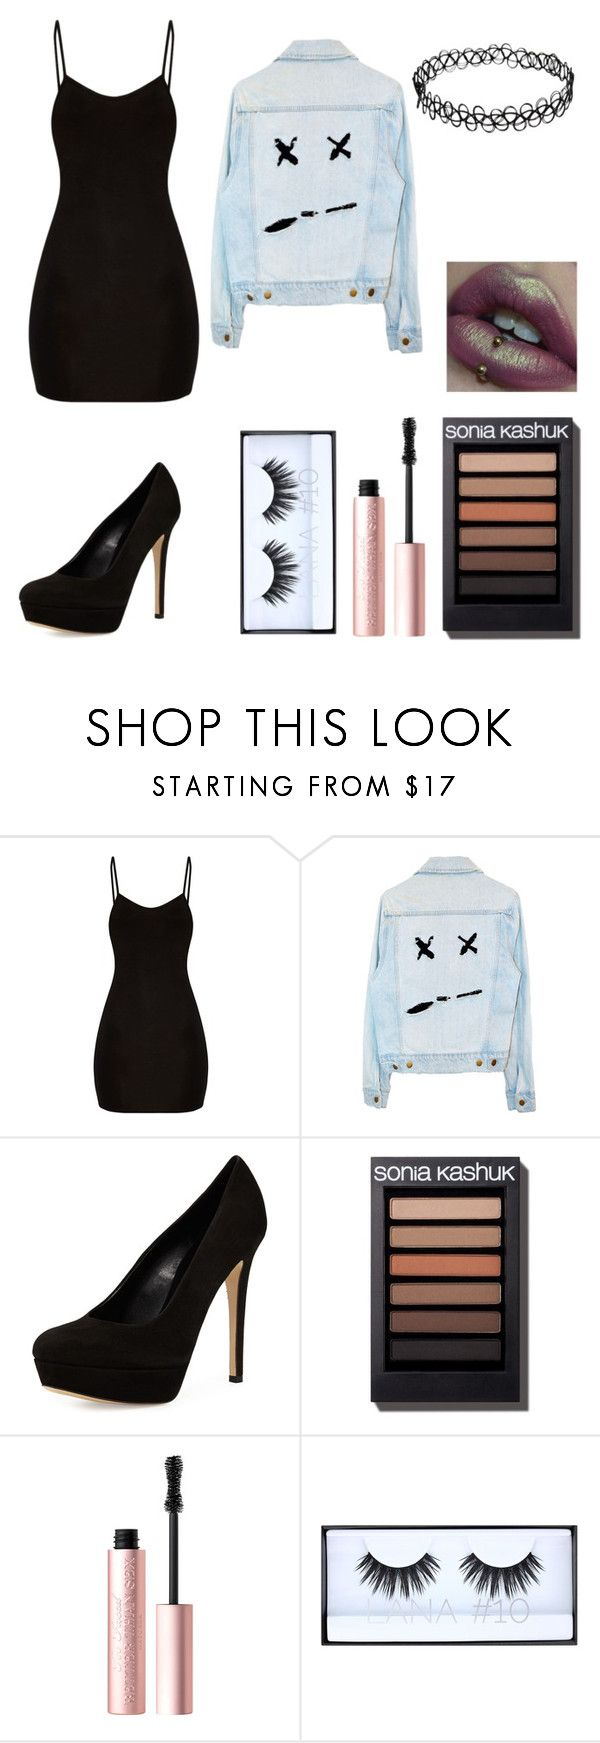 """You thought I'd die without you but I'm living"" by dangerousmistake ❤ liked on Polyvore featuring Charles David, Too Faced Cosmetics and Huda Beauty"